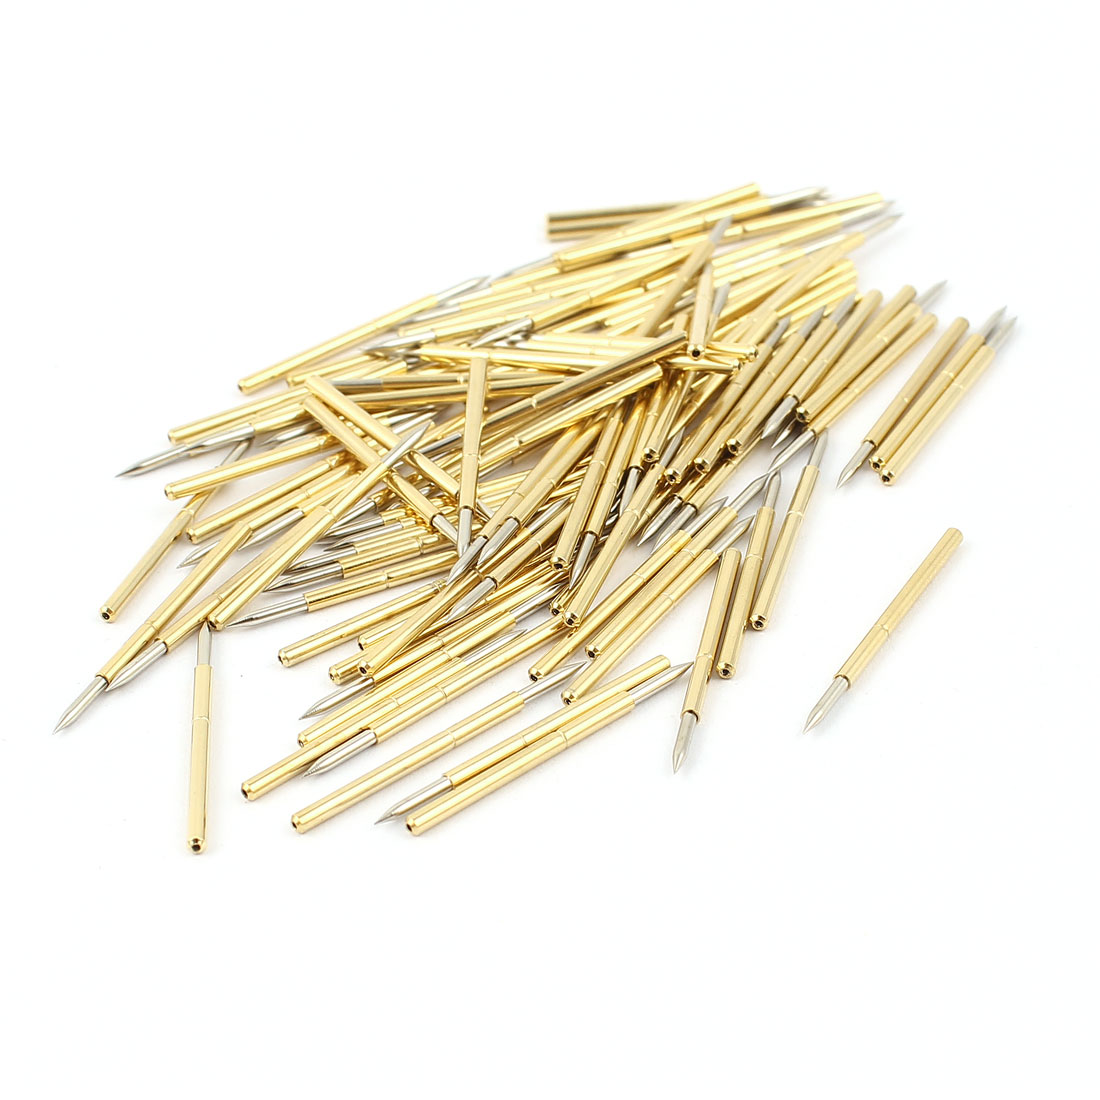 100 Pcs P160-B1 1.0mm Spear Tip Spring Testing Probes Pin 24.5mm Length